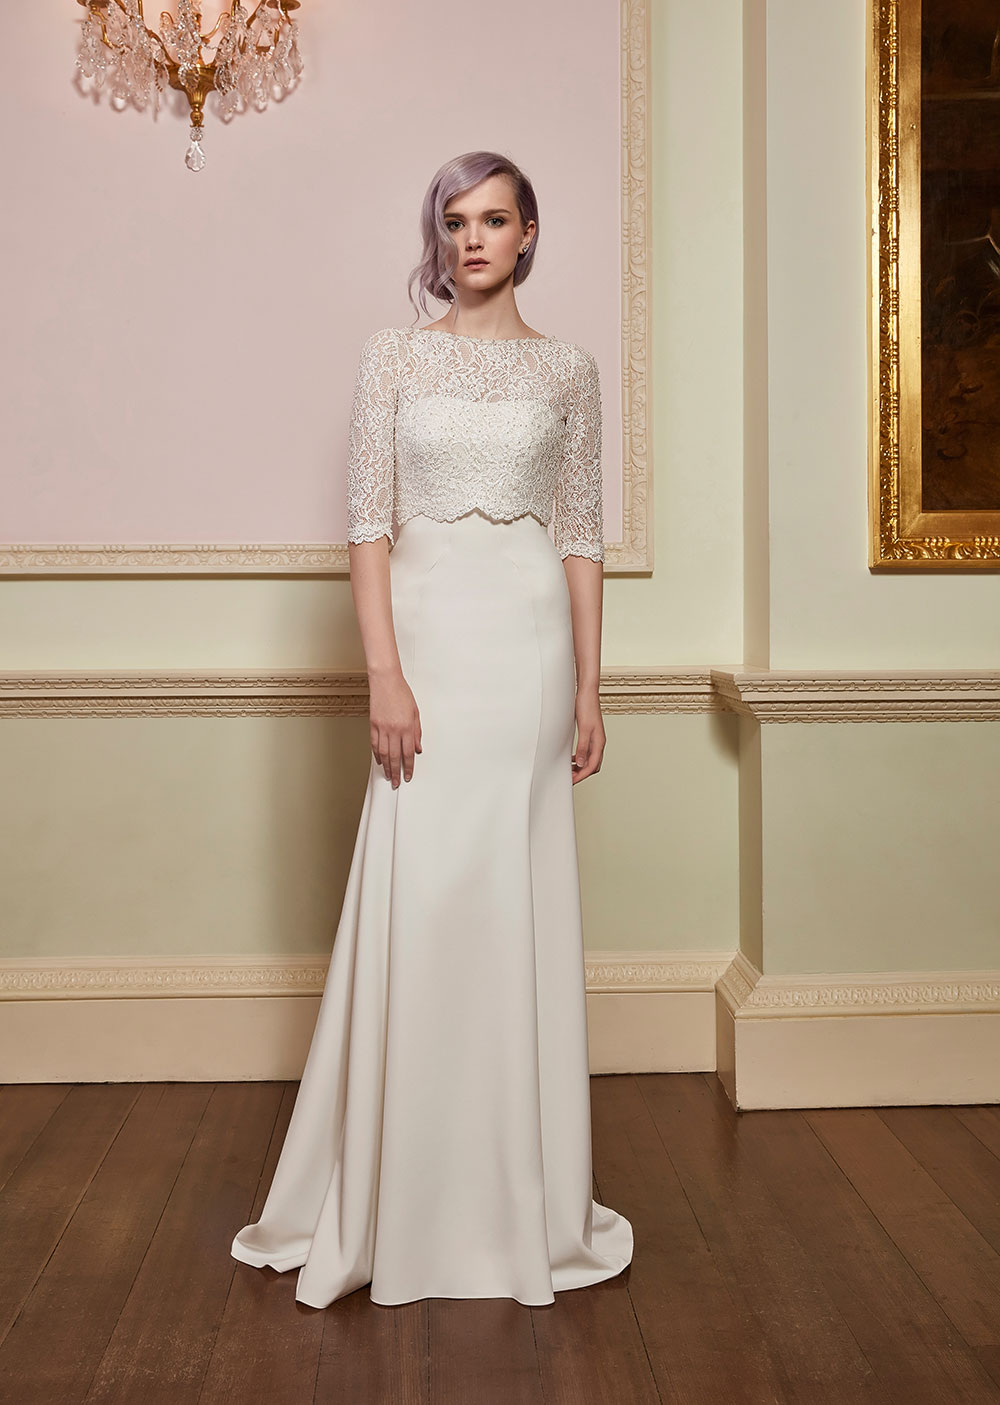 Adore & Amour - Jenny Packham 2018 Bridal Collection. www.theweddingnotebook.com